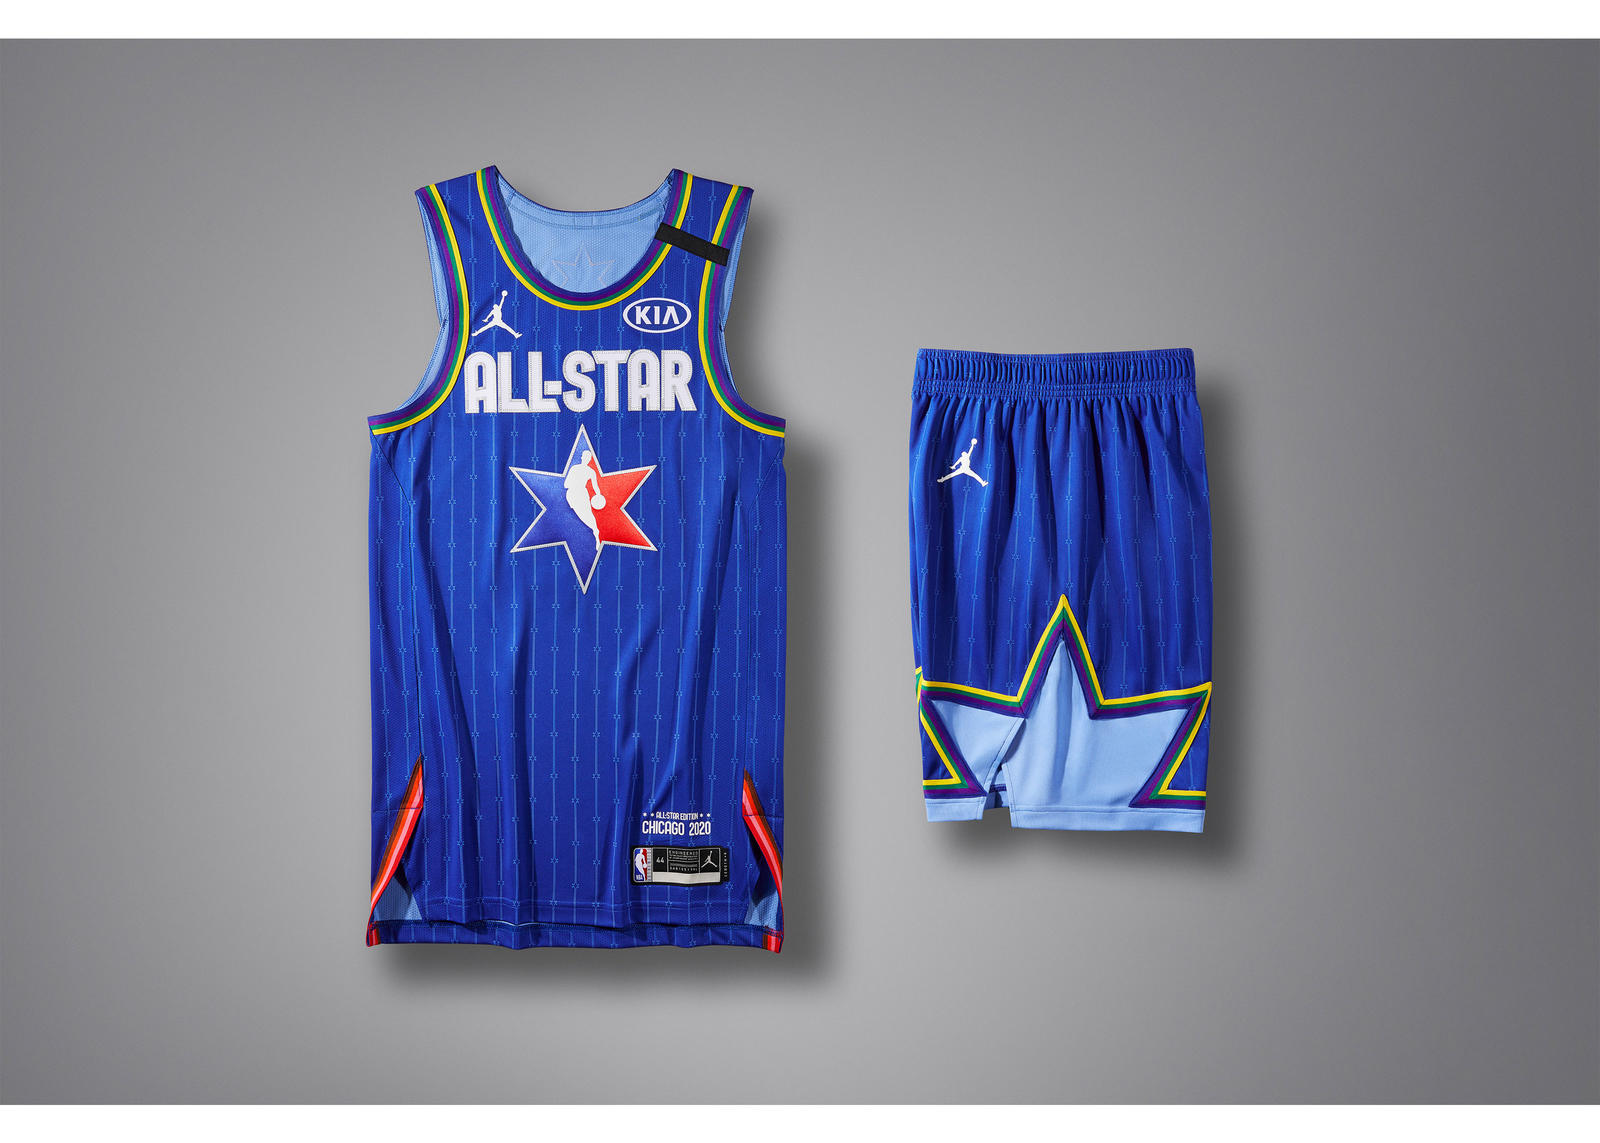 Jordan Brand and Nike NBA All Star 2020 Uniforms 9